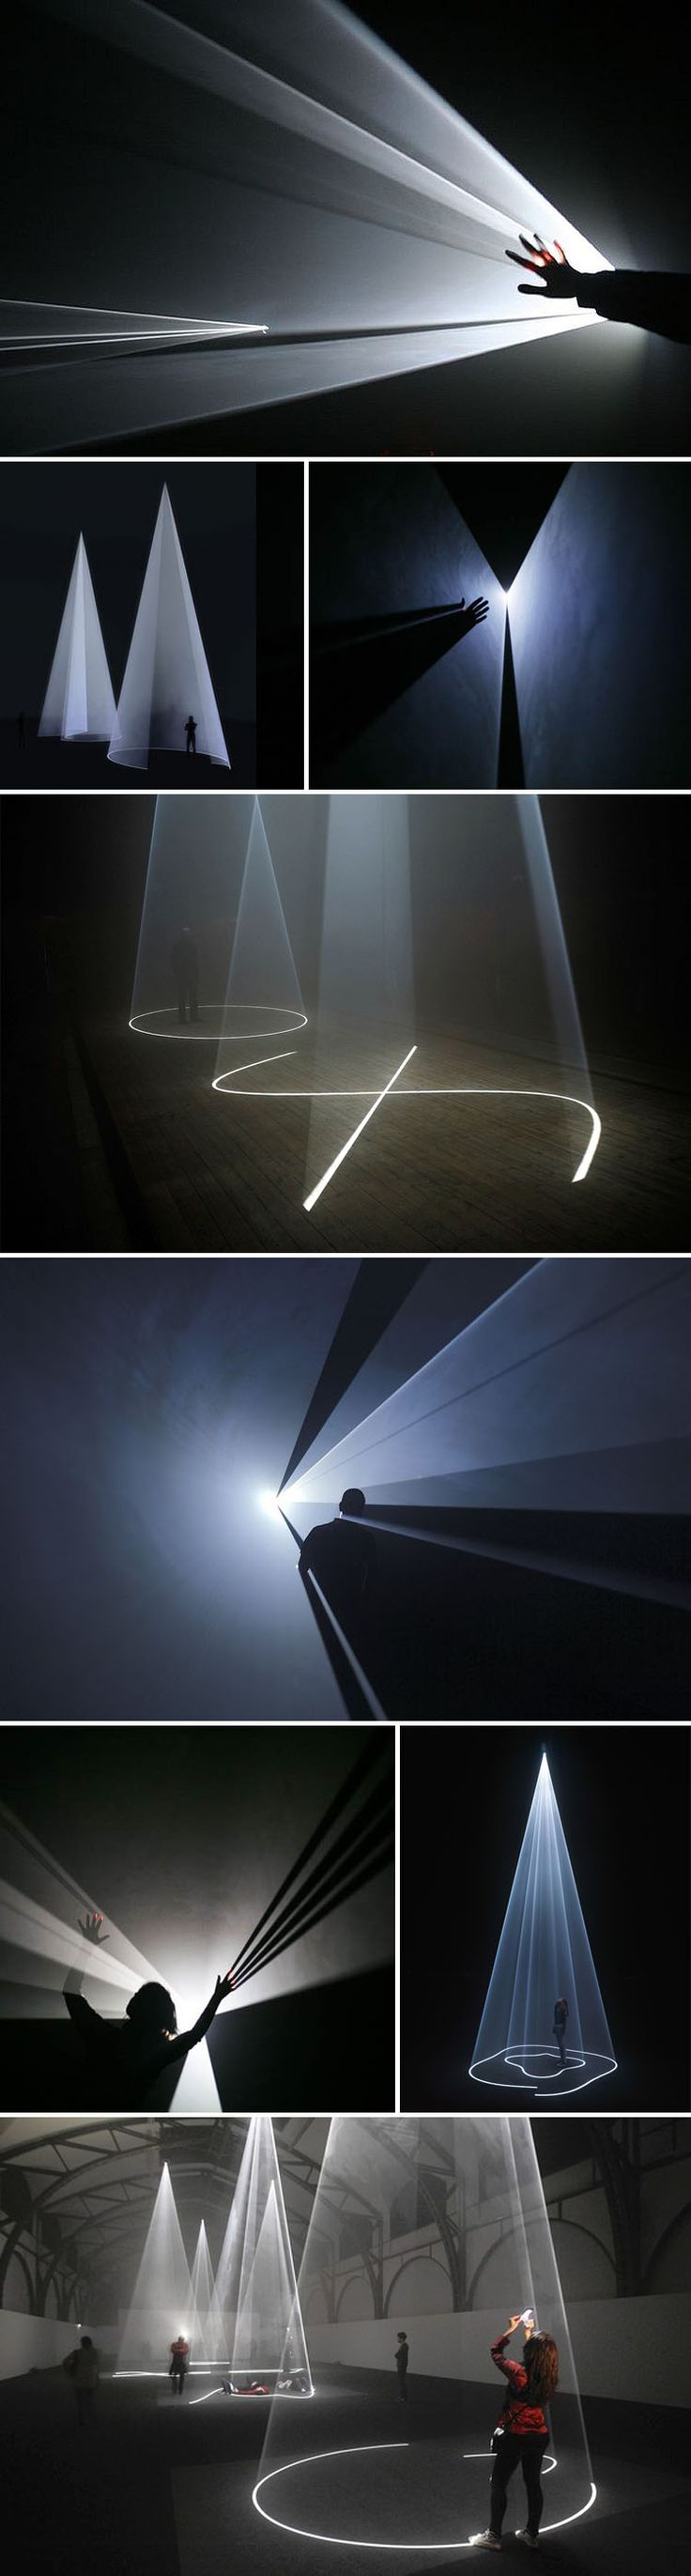 Click to enlarge New York based artist Anthony McCall has been creating unique light installations since the 1970s with a 20-year break in between. Currently, McCall has a solo exhibit in Berlin at...